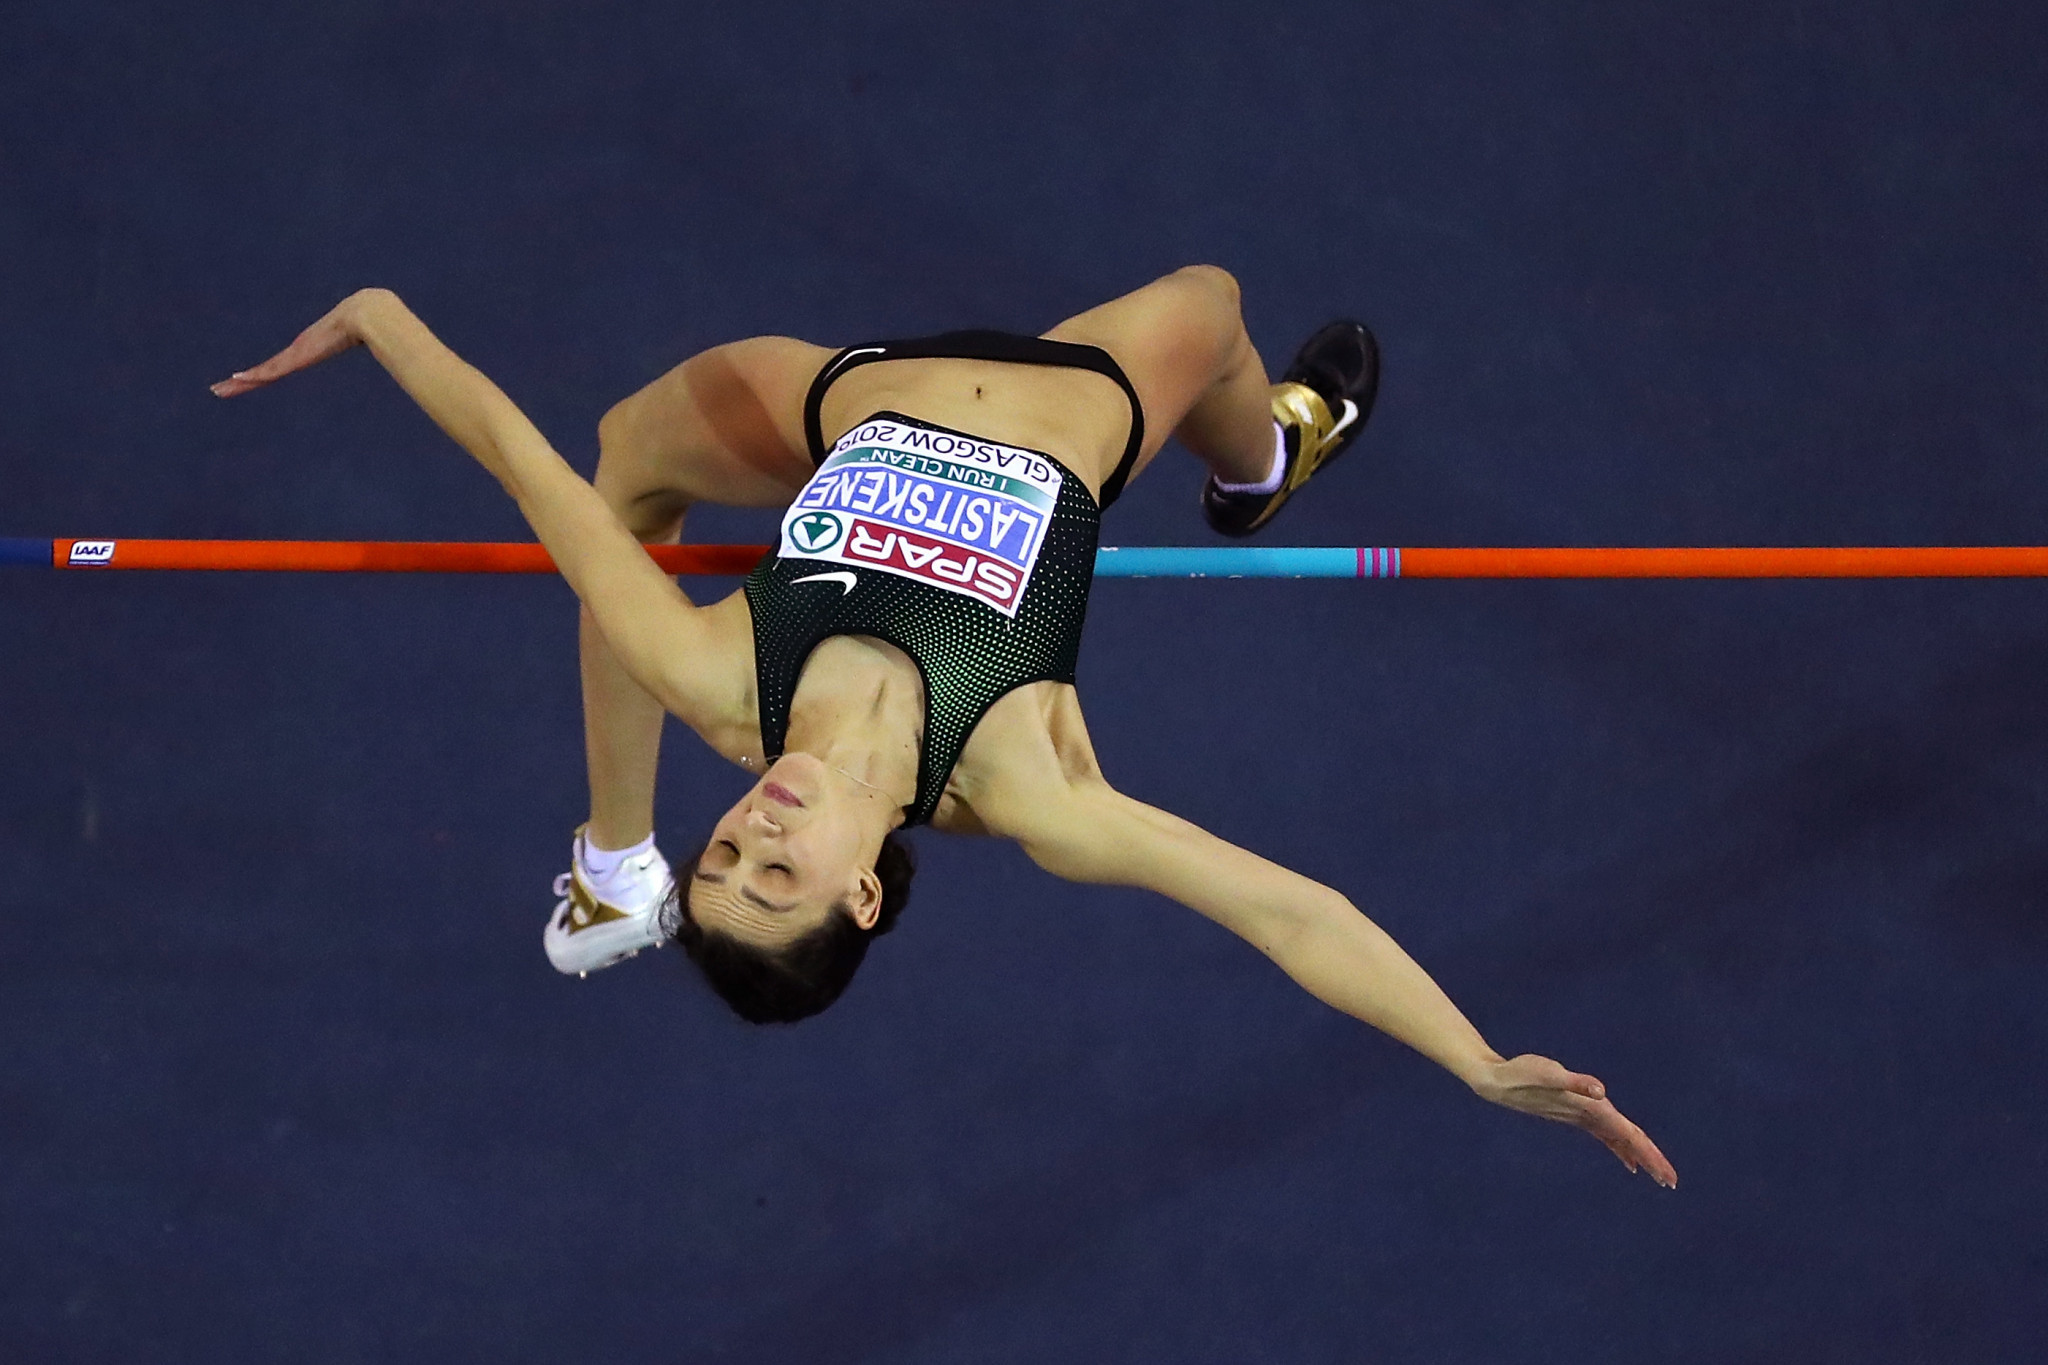 Russian athletes, like high jumper Mariya Lasitskene, allowed to compete at this year's European Indoor Championships in Glasgow, had to take part as Authorised Neutral Athletes ©Getty Images